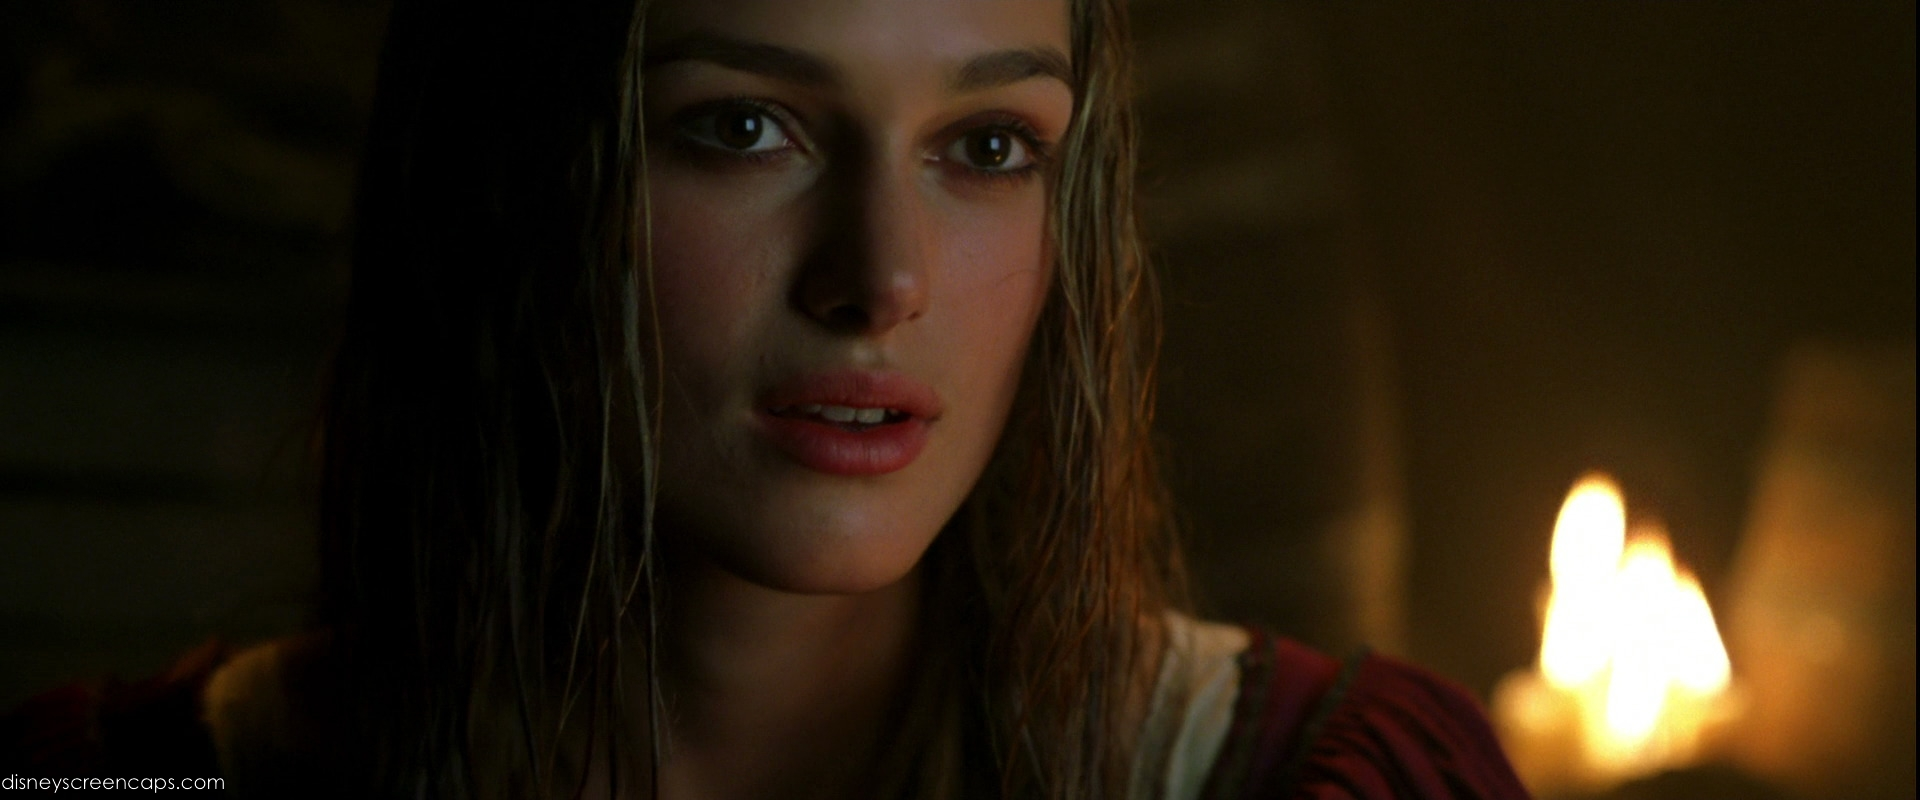 Keira Knightley images...